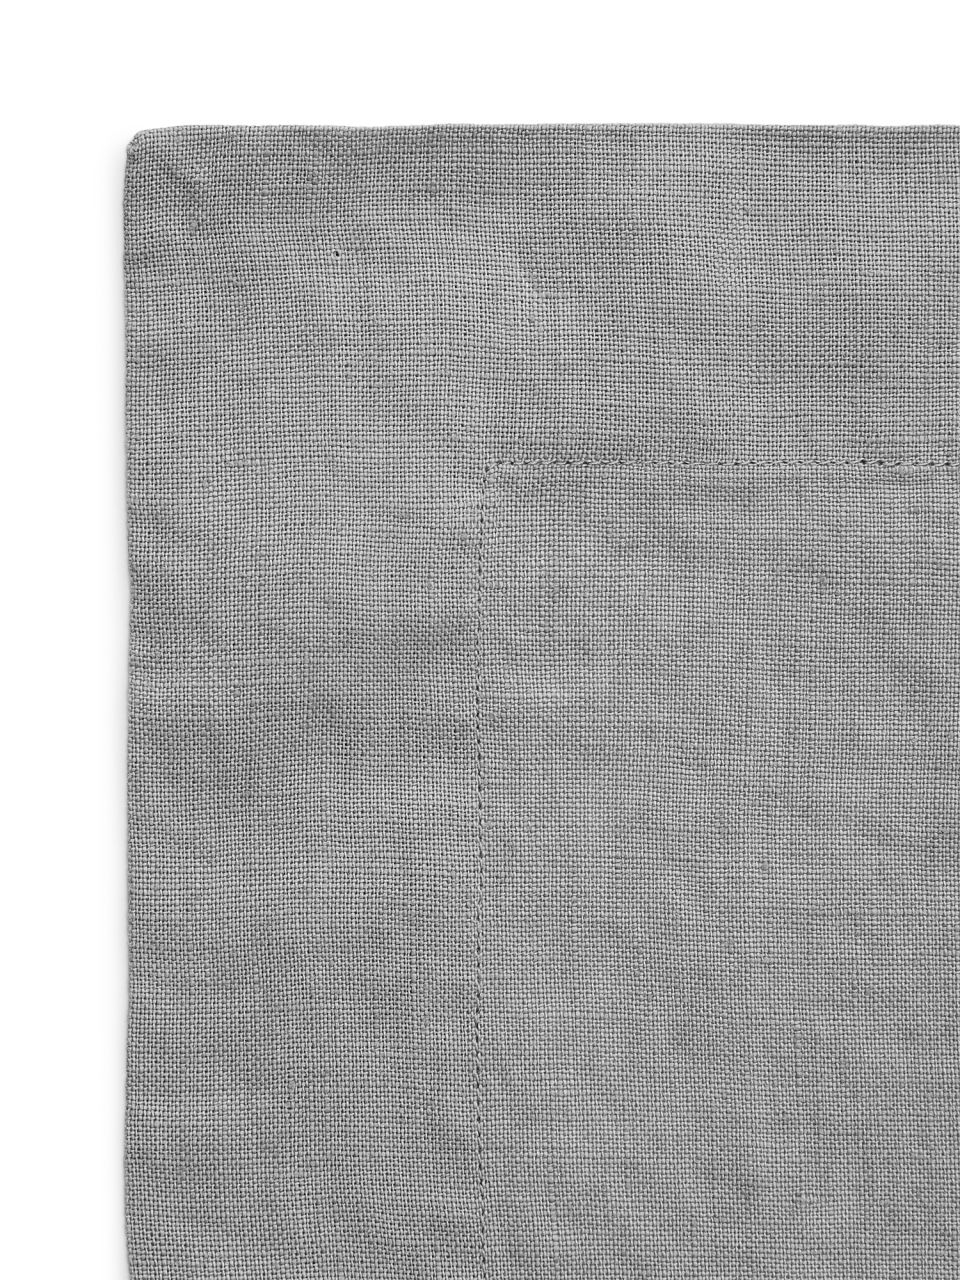 Side image of Arket linen placemat in grey